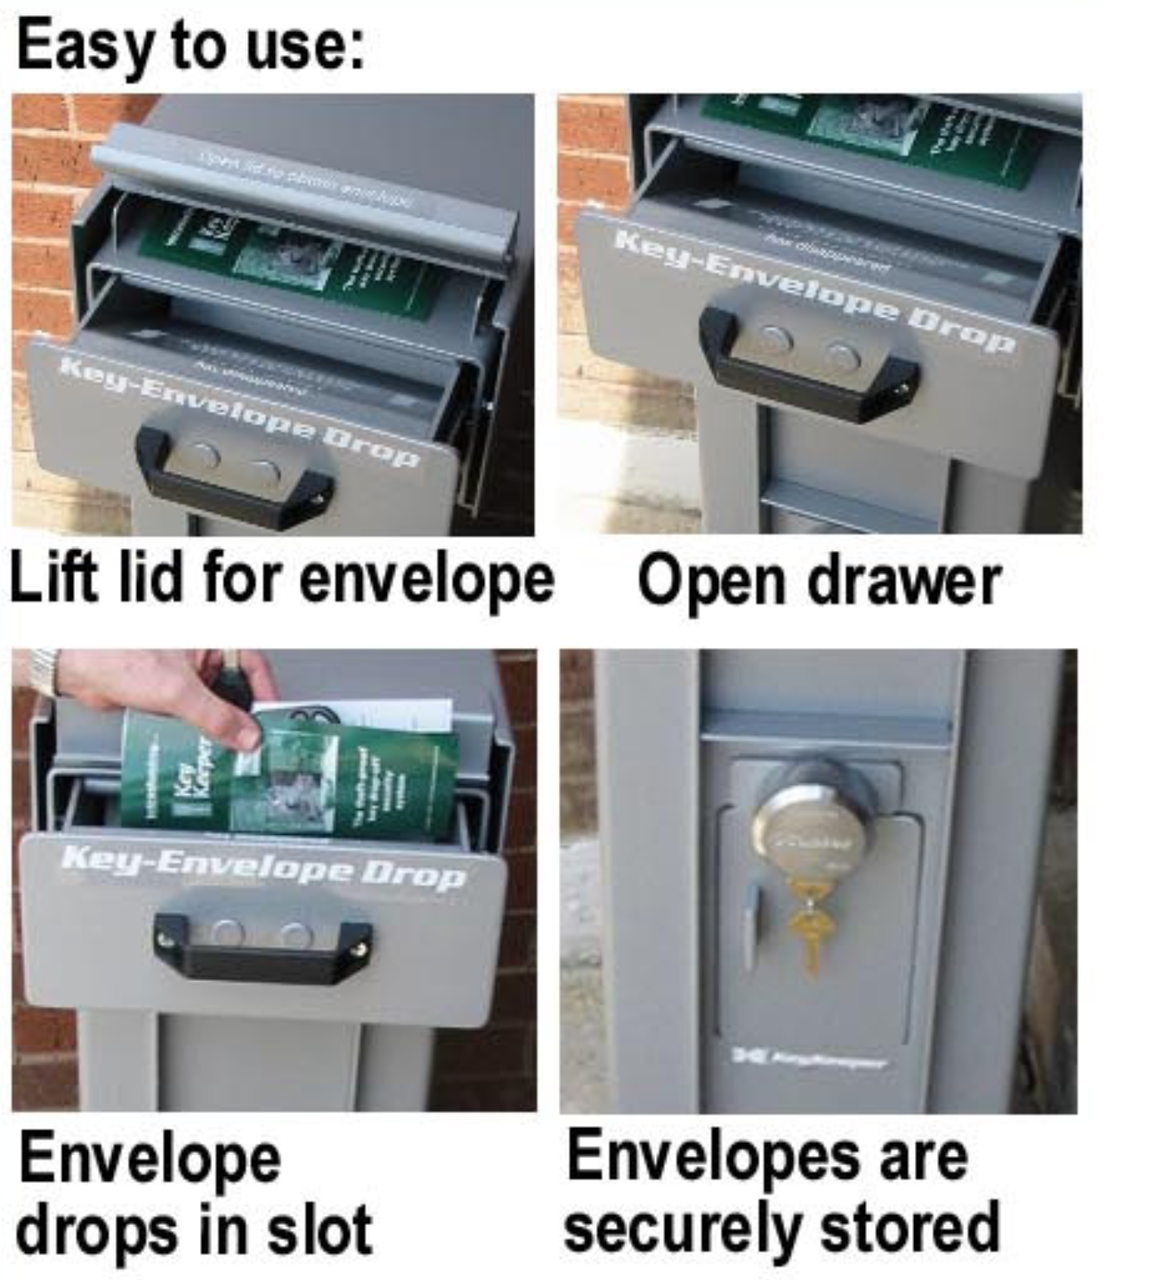 Free Standing High Security Key or Payment Drop Box easy to use